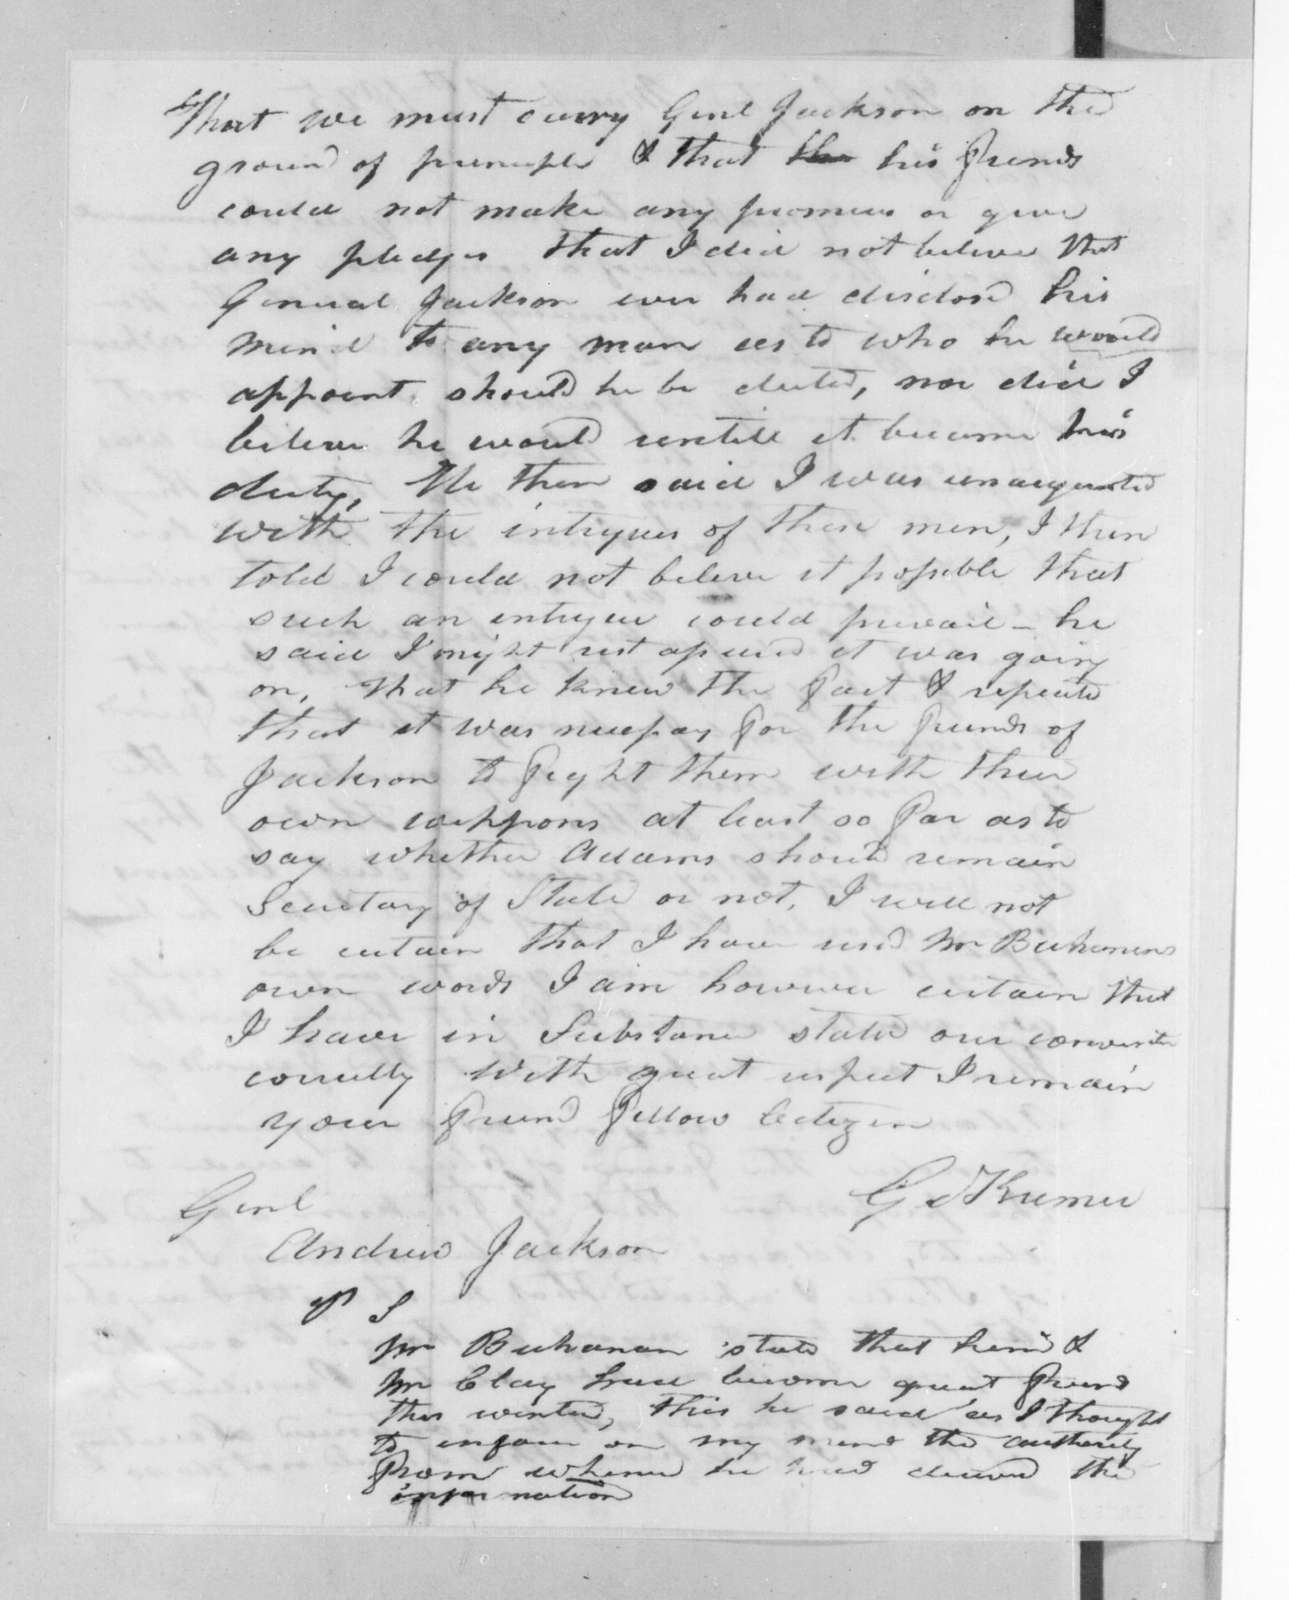 George Kremer to Andrew Jackson, March 8, 1825